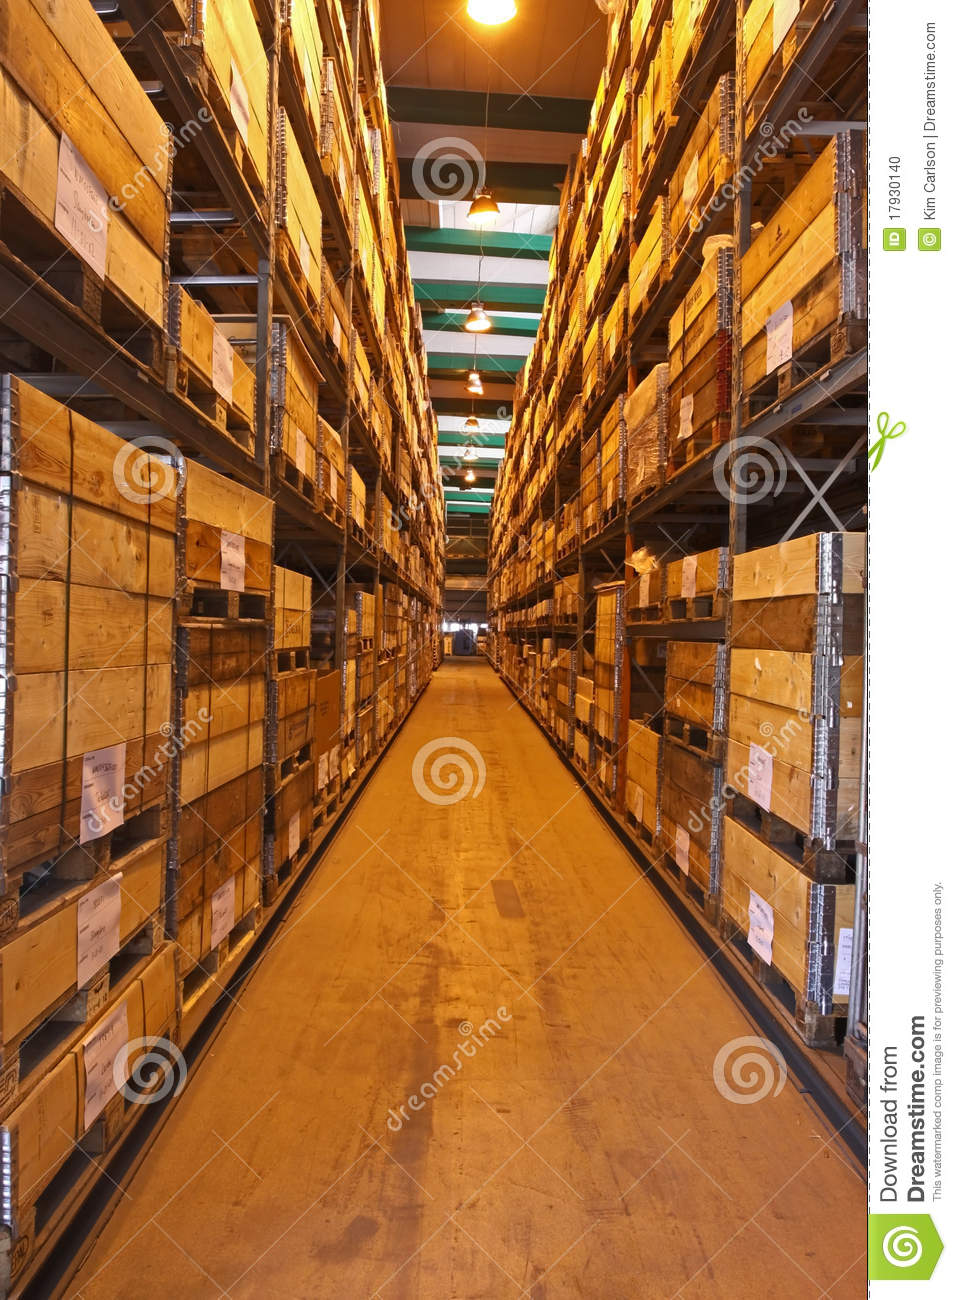 store or stock-in-trade stock photo